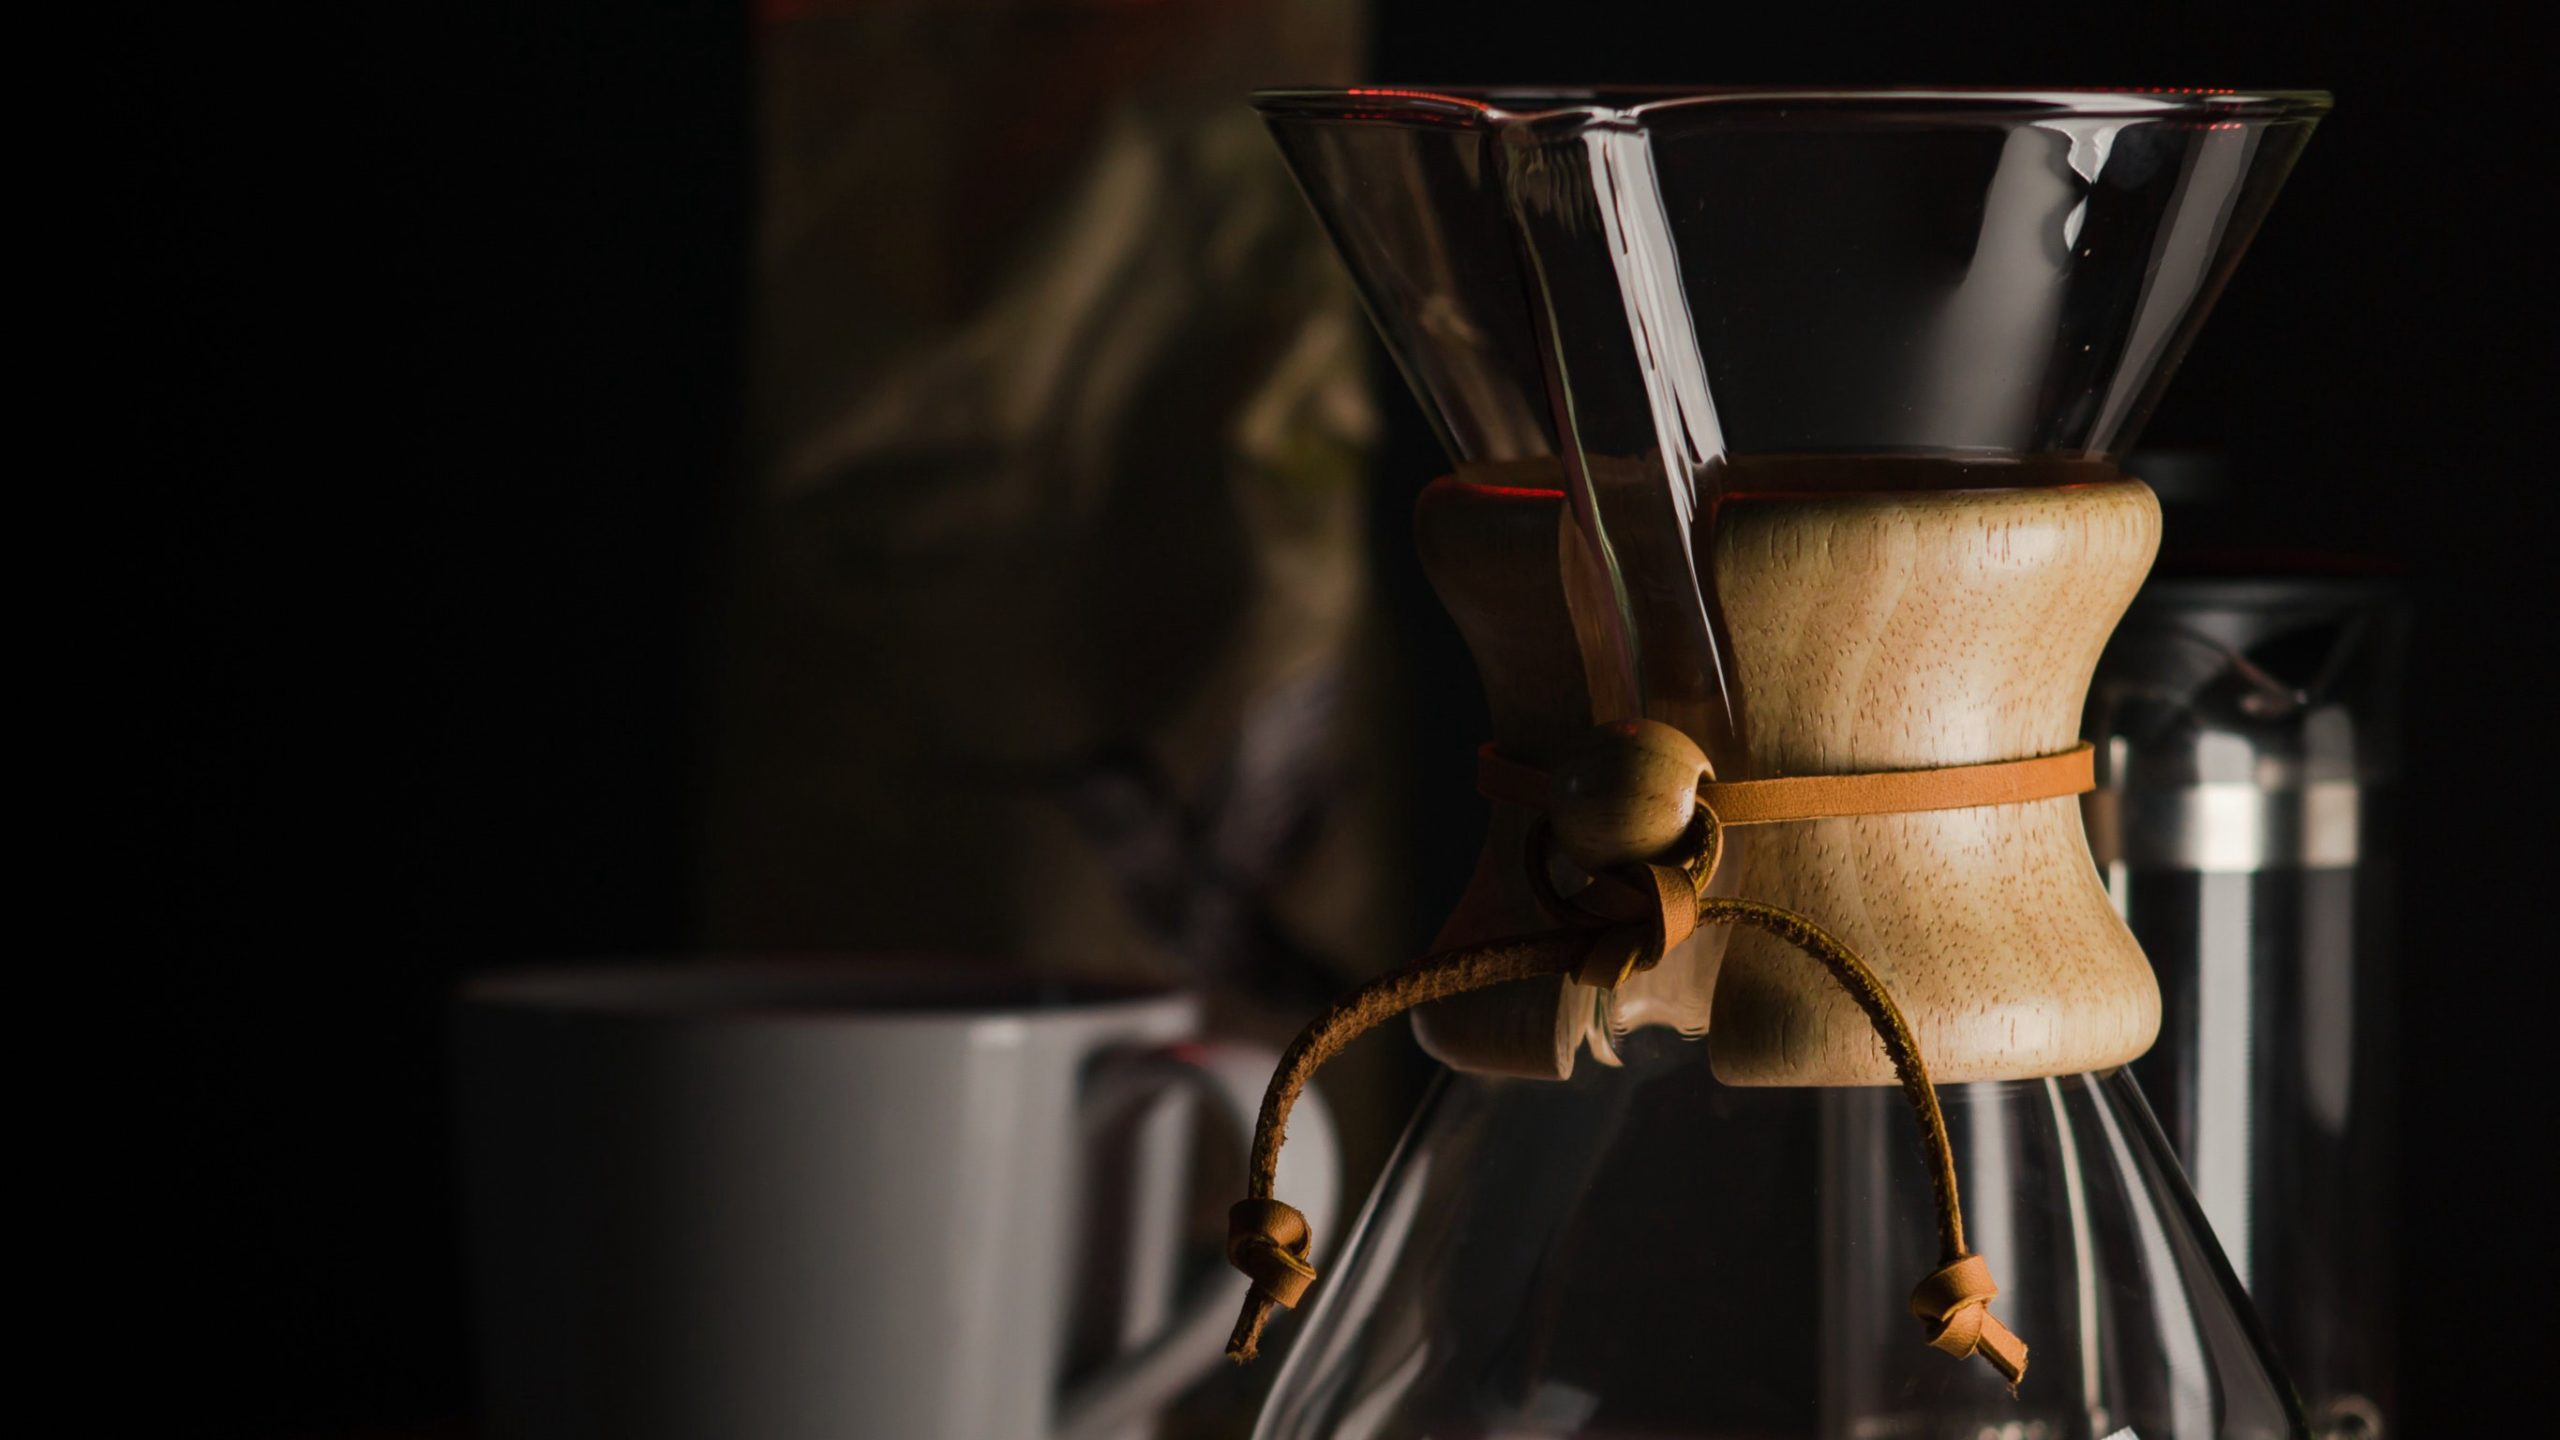 We Were Wrong To Give Up On Pour-Over Coffee